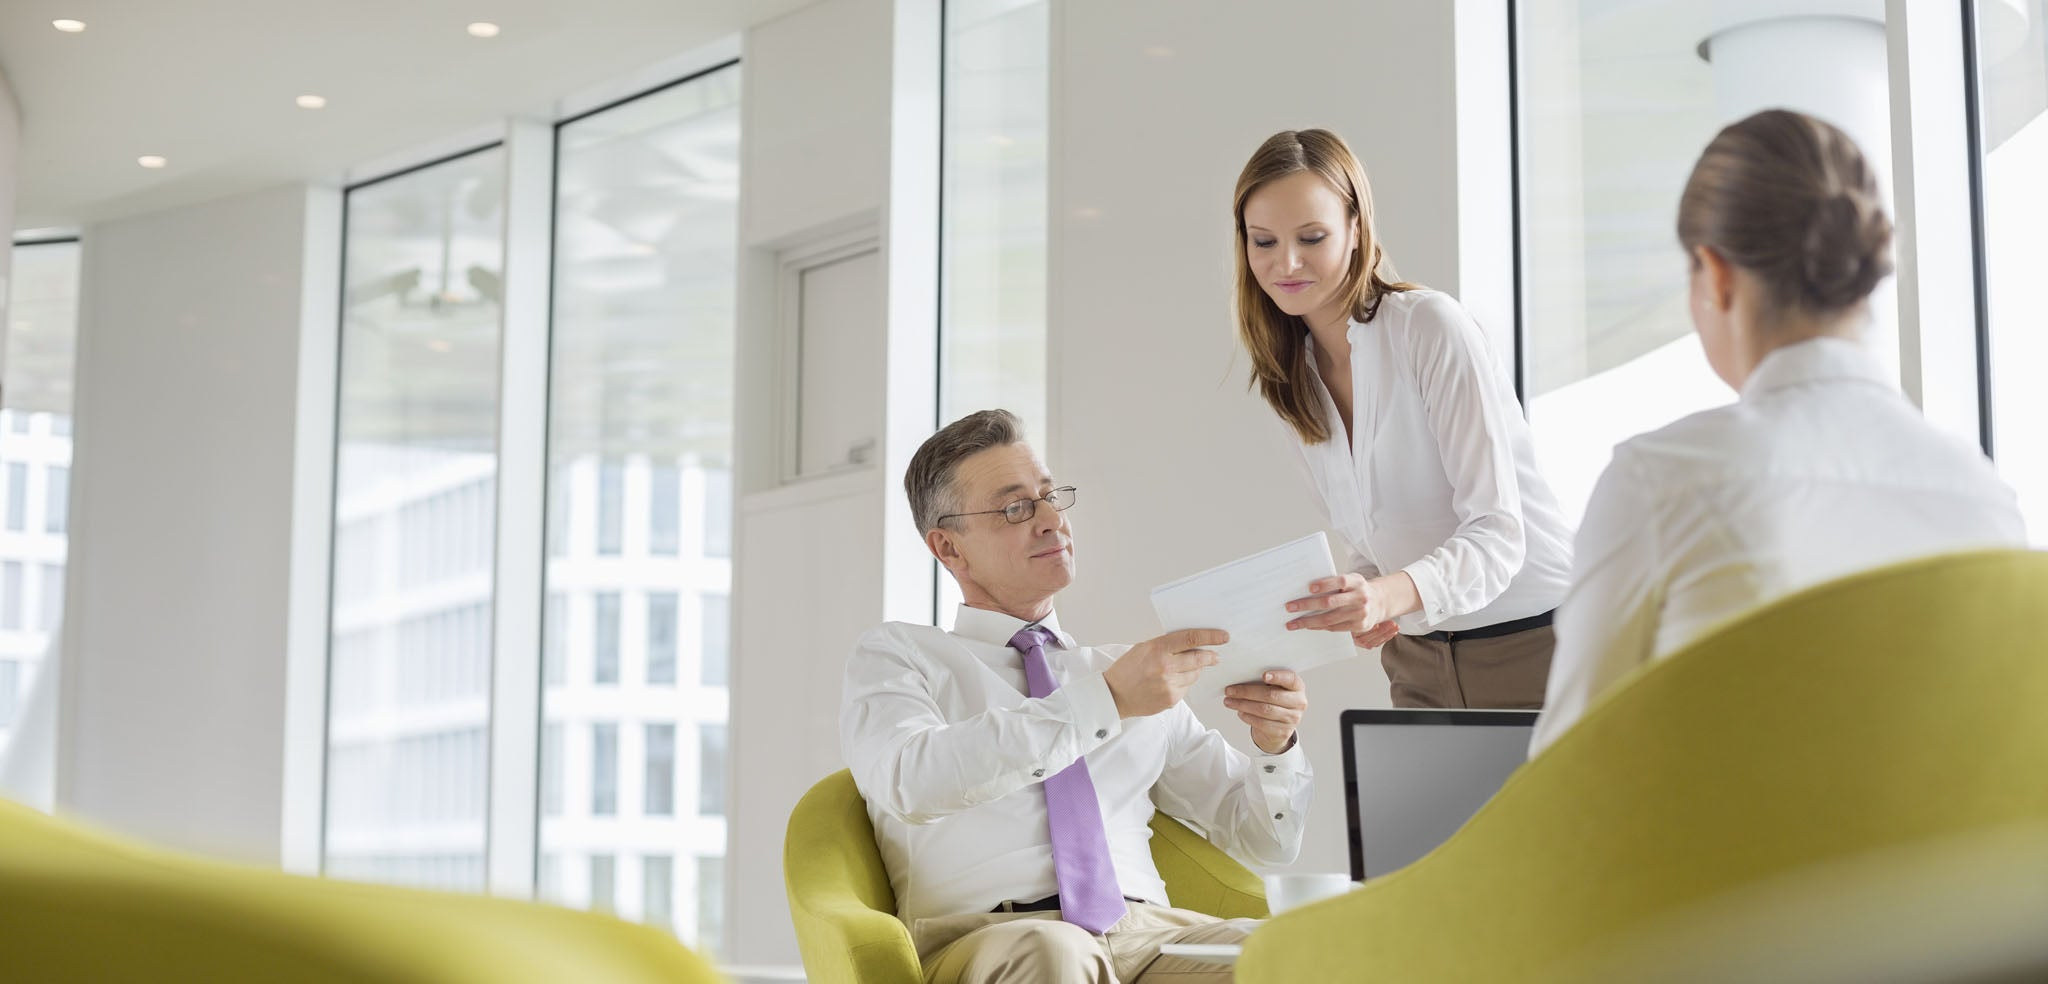 image of a man and two women discussing business